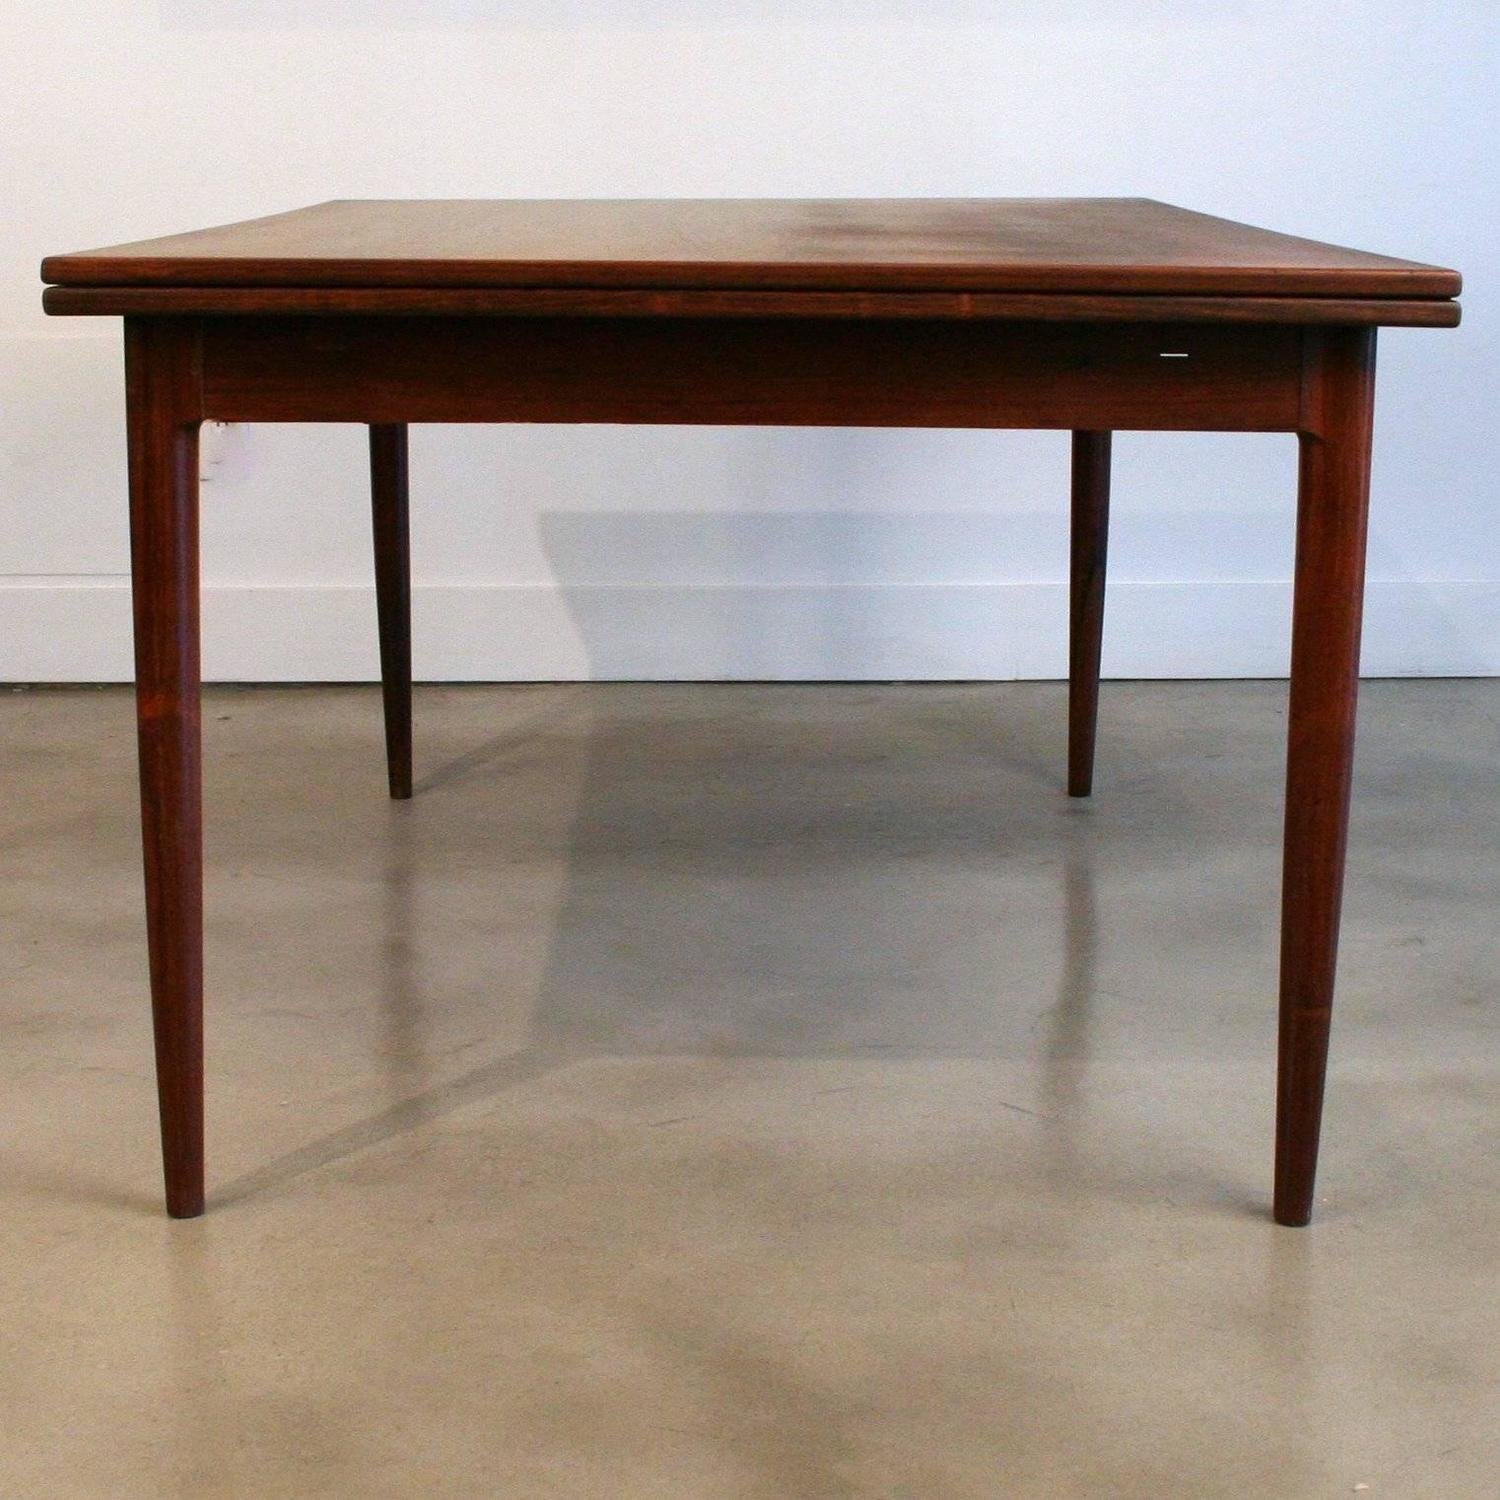 Vintage Danish Rosewood Dining Table by NO M248ller at 1stdibs : IMG7352z from www.1stdibs.com size 1500 x 1500 jpeg 213kB